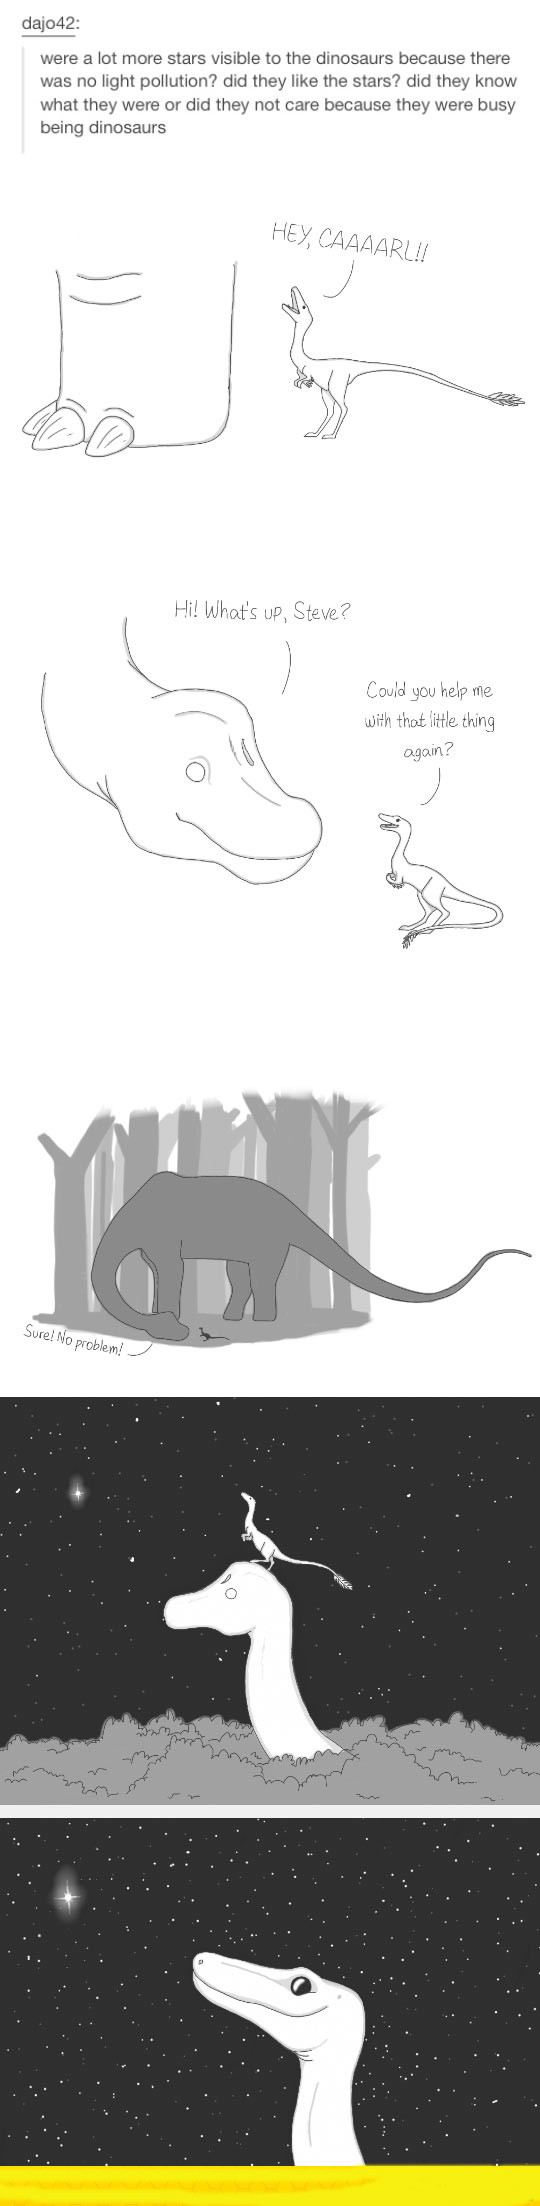 funny-dinosaurs-star-help-comic